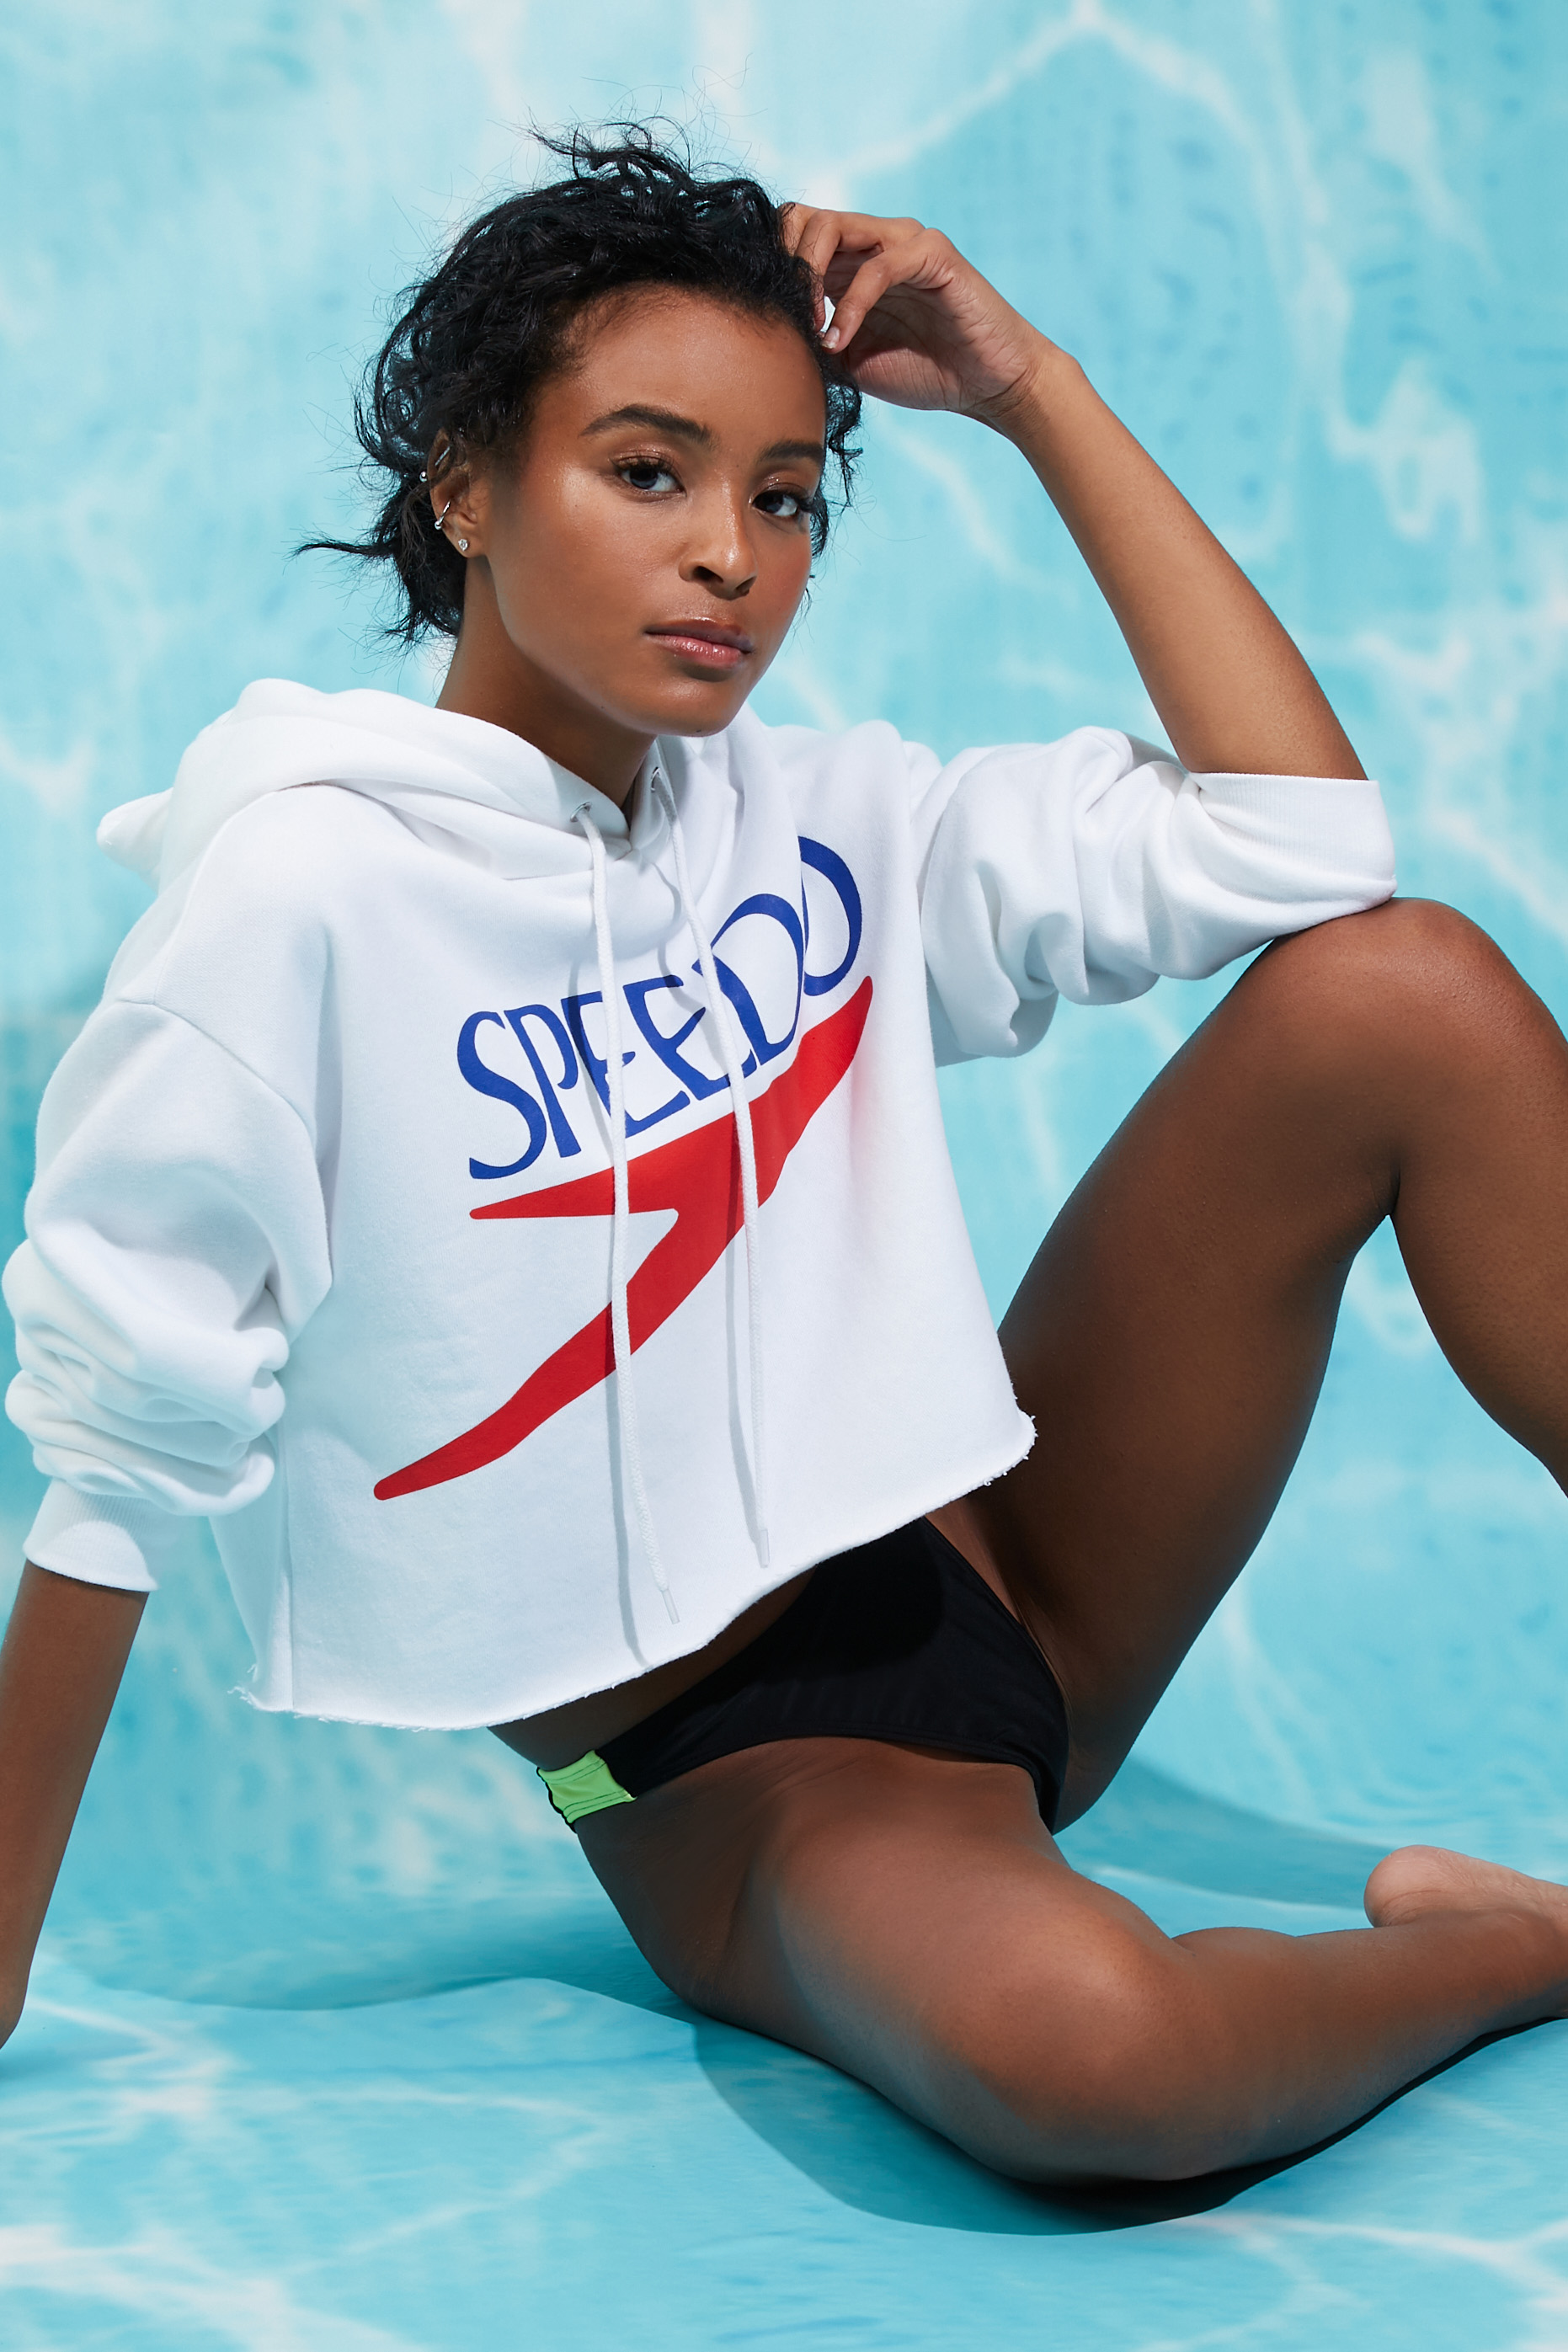 Speedo Cropped Graphic Hoodie - $27.50